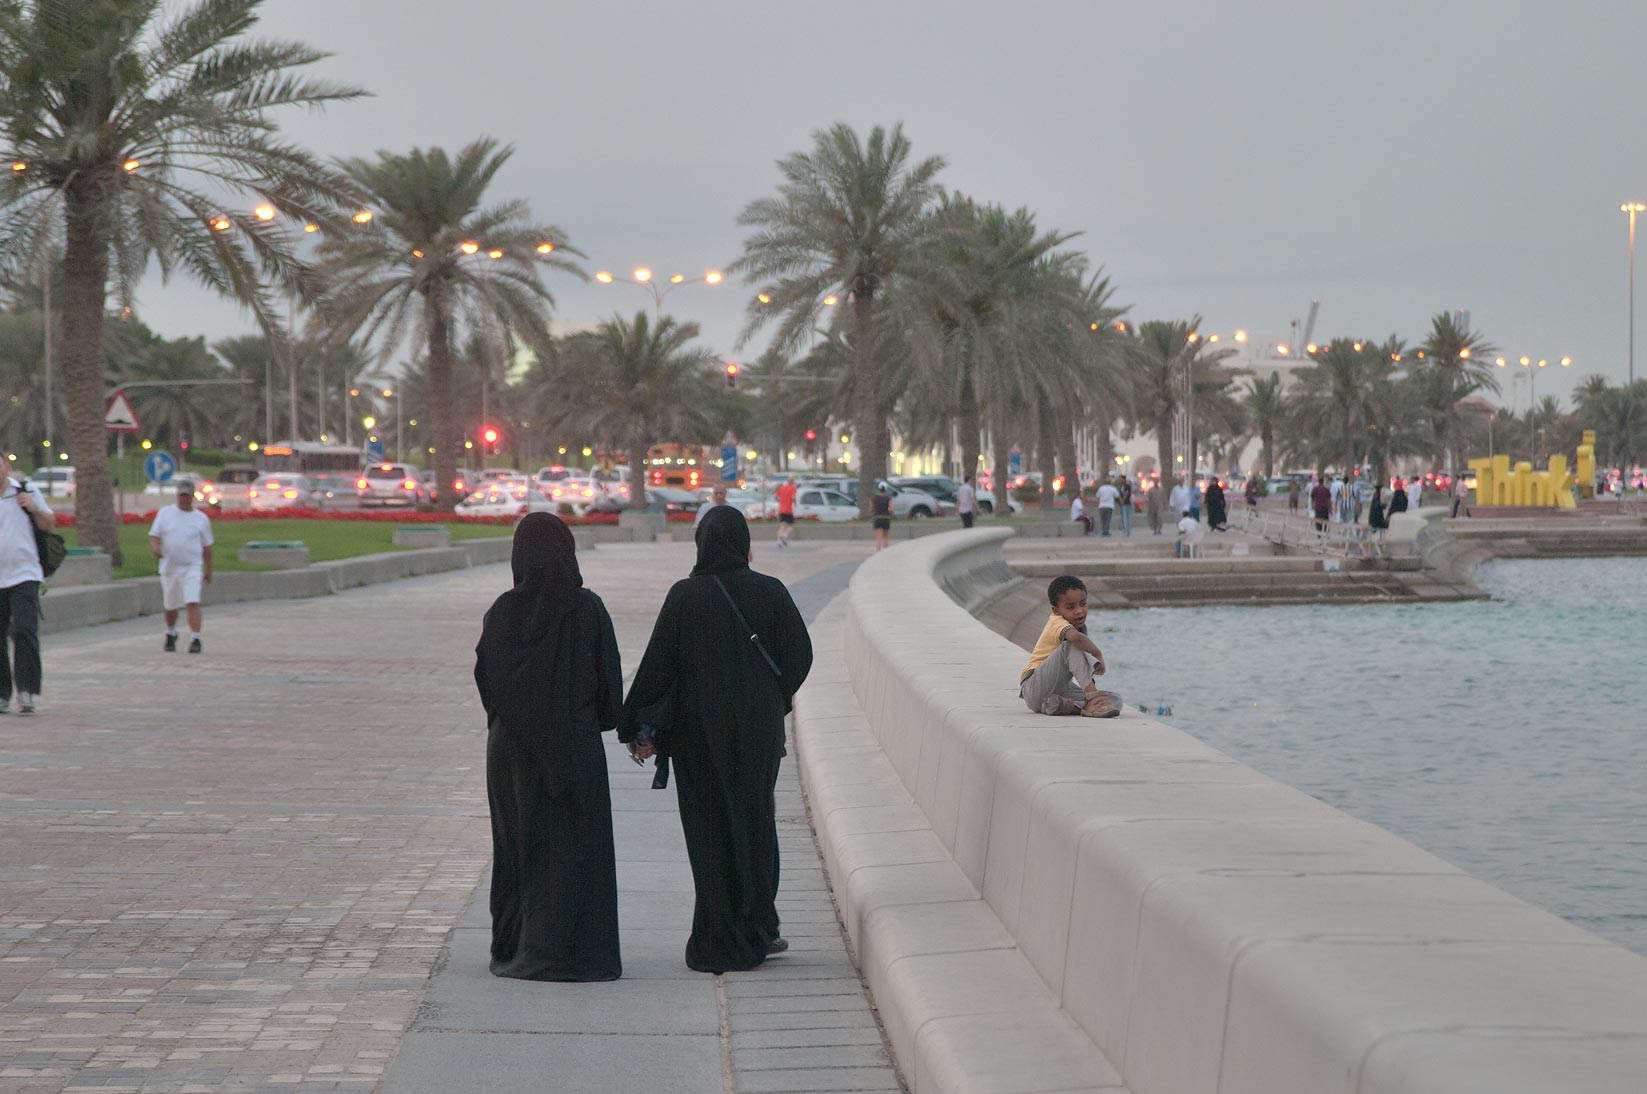 Women in abaya walking on Corniche (seafront promenade) at evening. Doha, Qatar